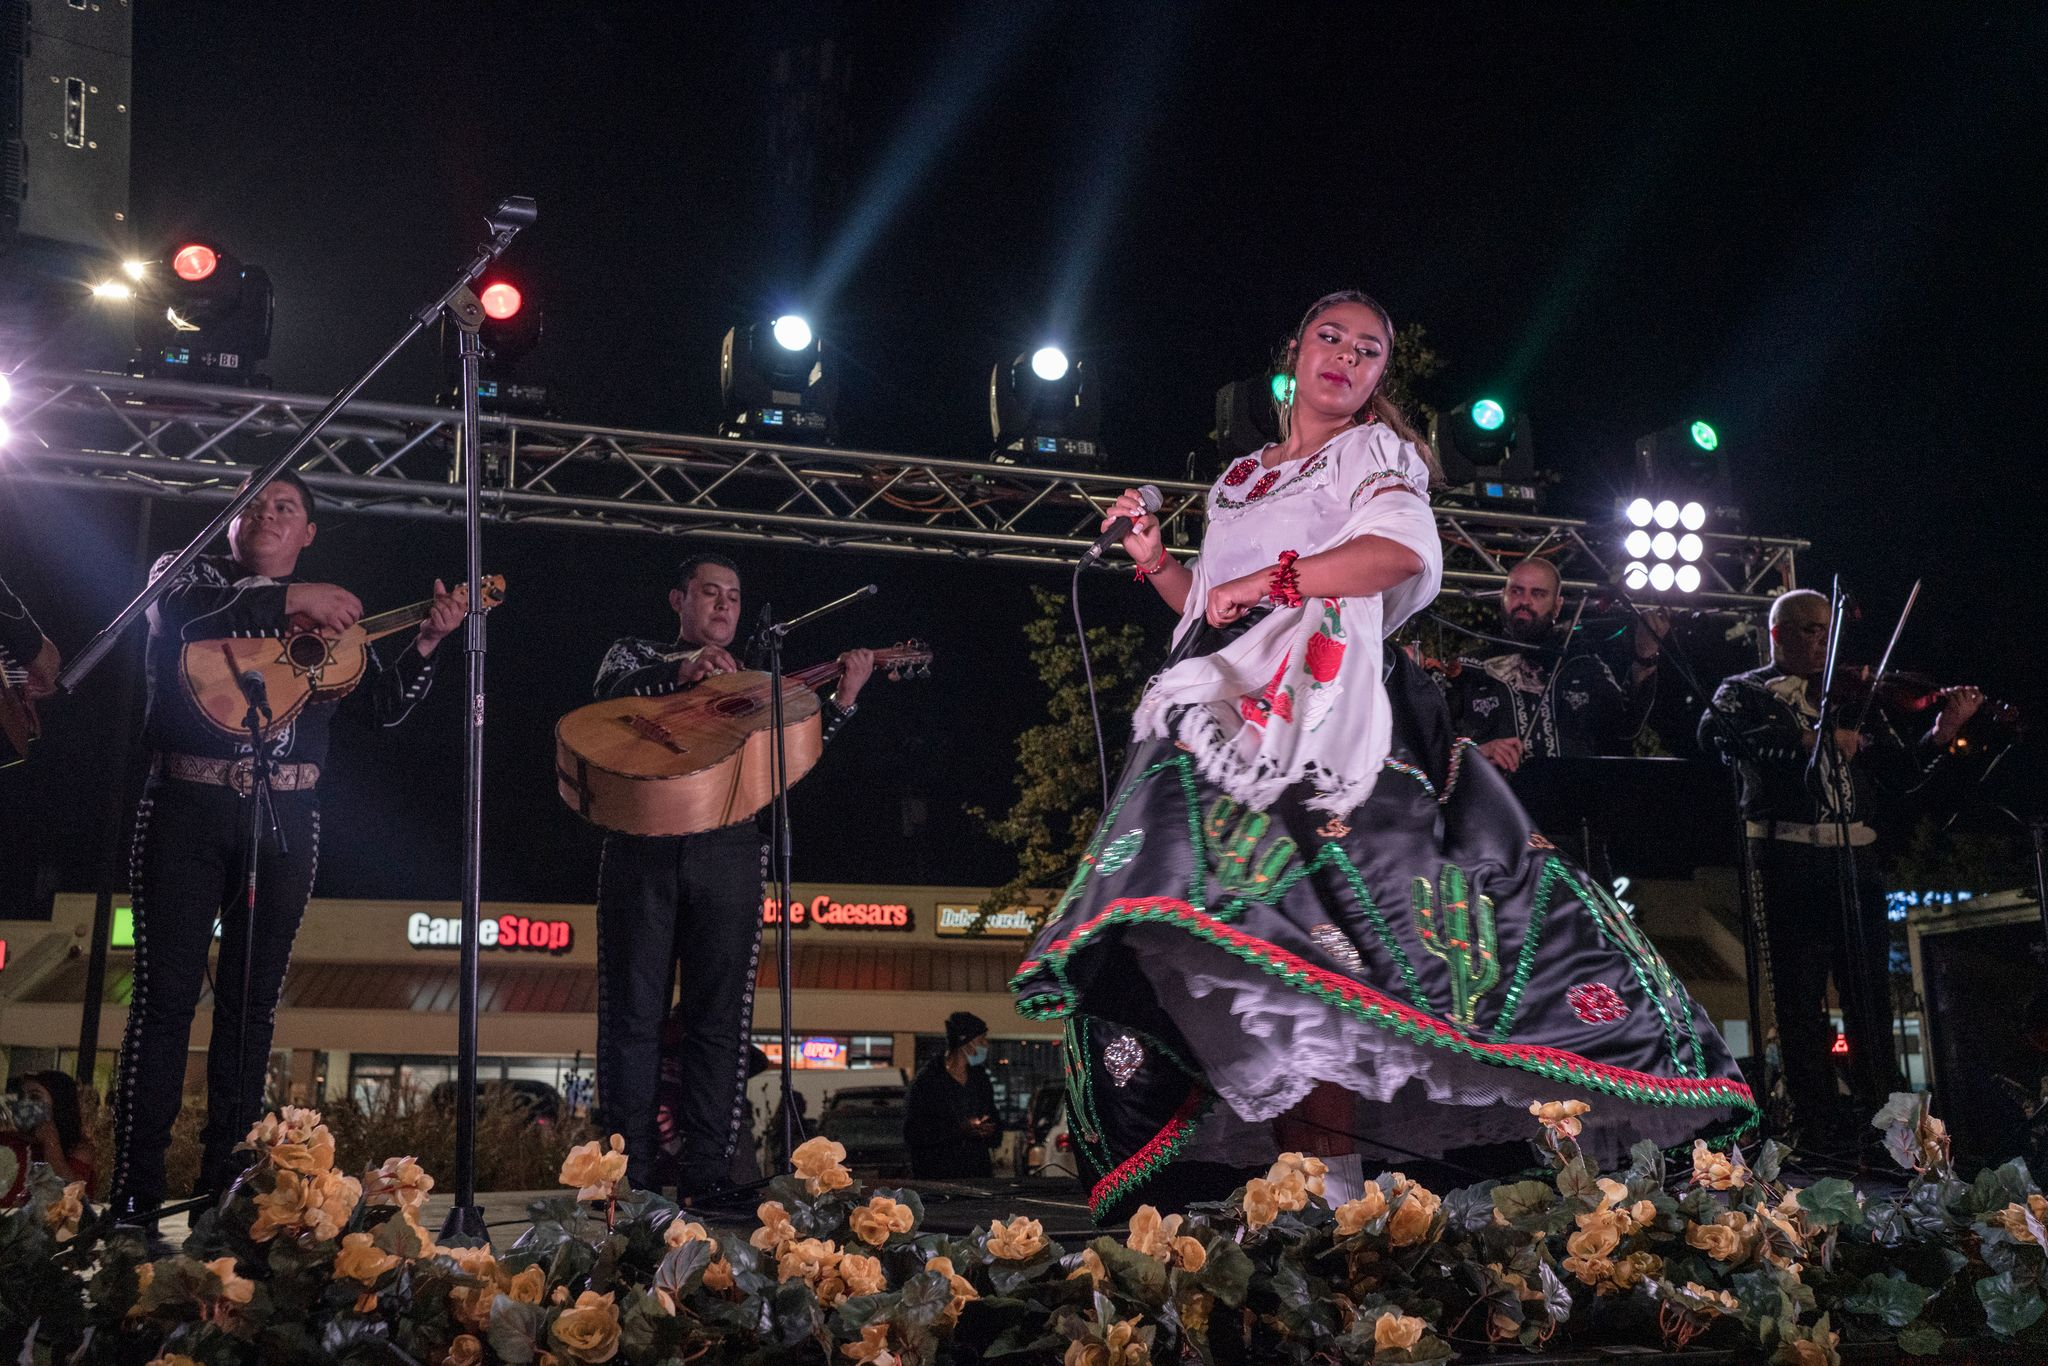 Elena Jimenez performs with Mariachi Nashville during an evening performance on Mexican Independence day at Plaza Mariachi. (Photo: John Partipilo)